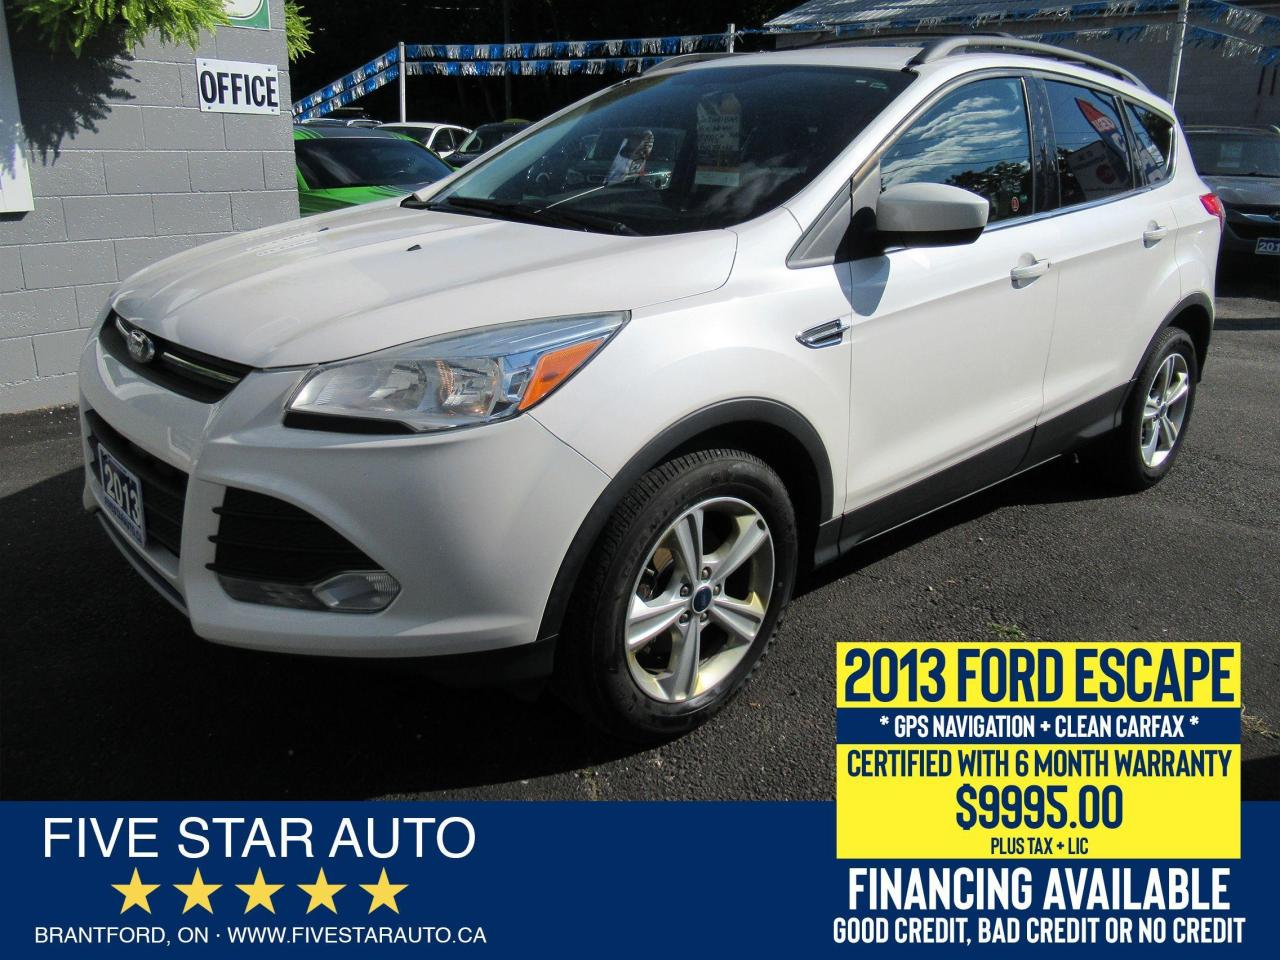 2013 Ford Escape SE *Clean Carfax* Certified w/ 6 Month Warranty